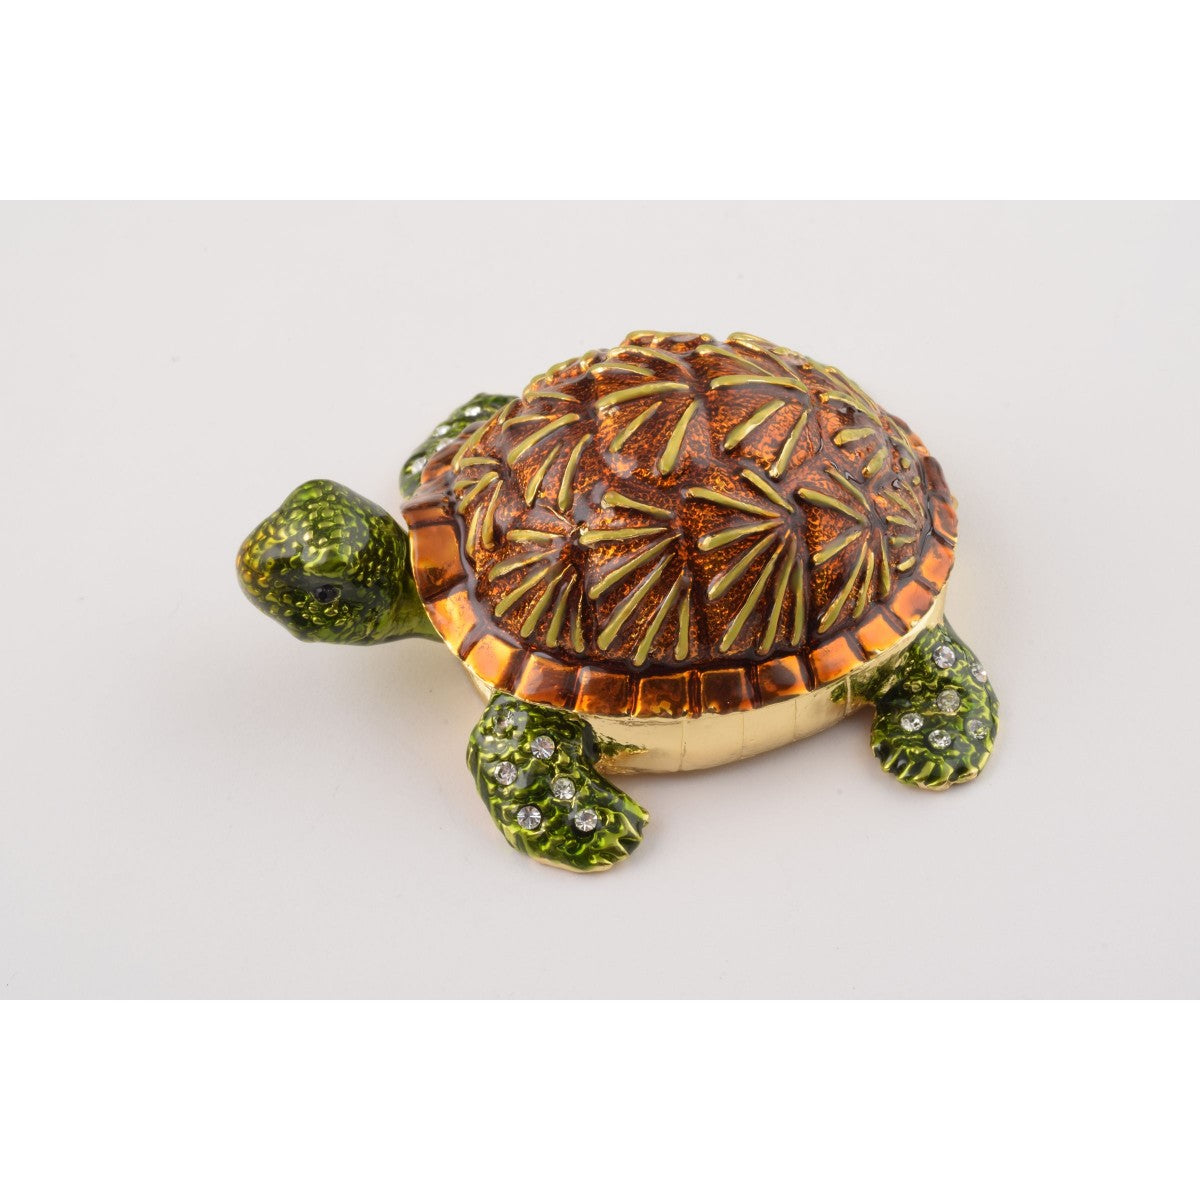 Turtle Faberge Styled Trinket Box by Keren Kopal